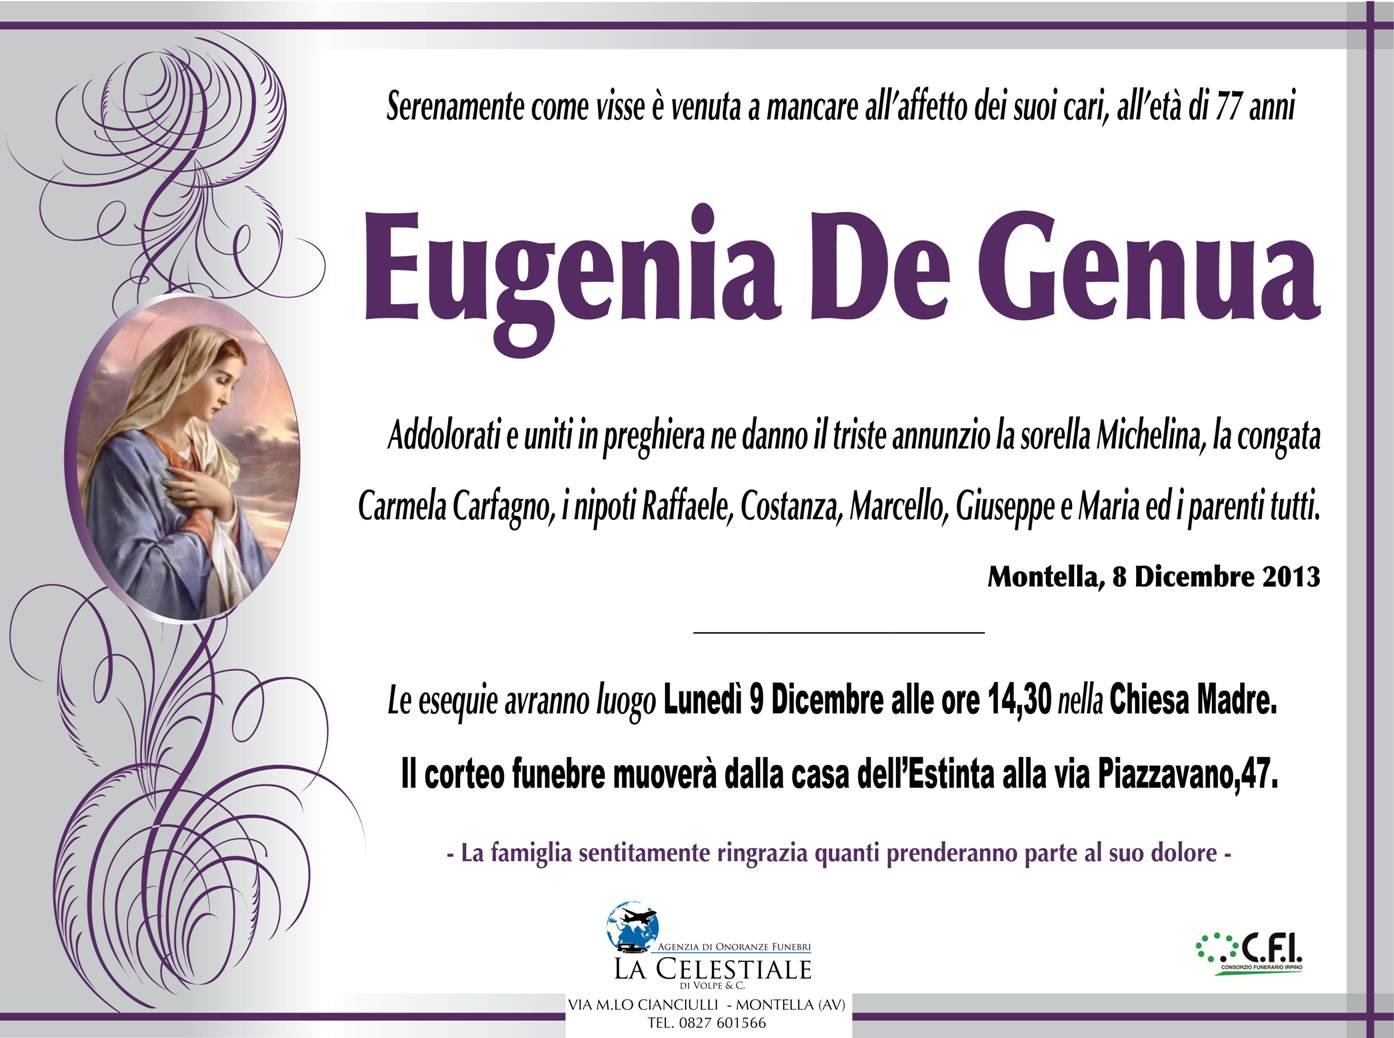 09-12-2013-De Genua Eugenia